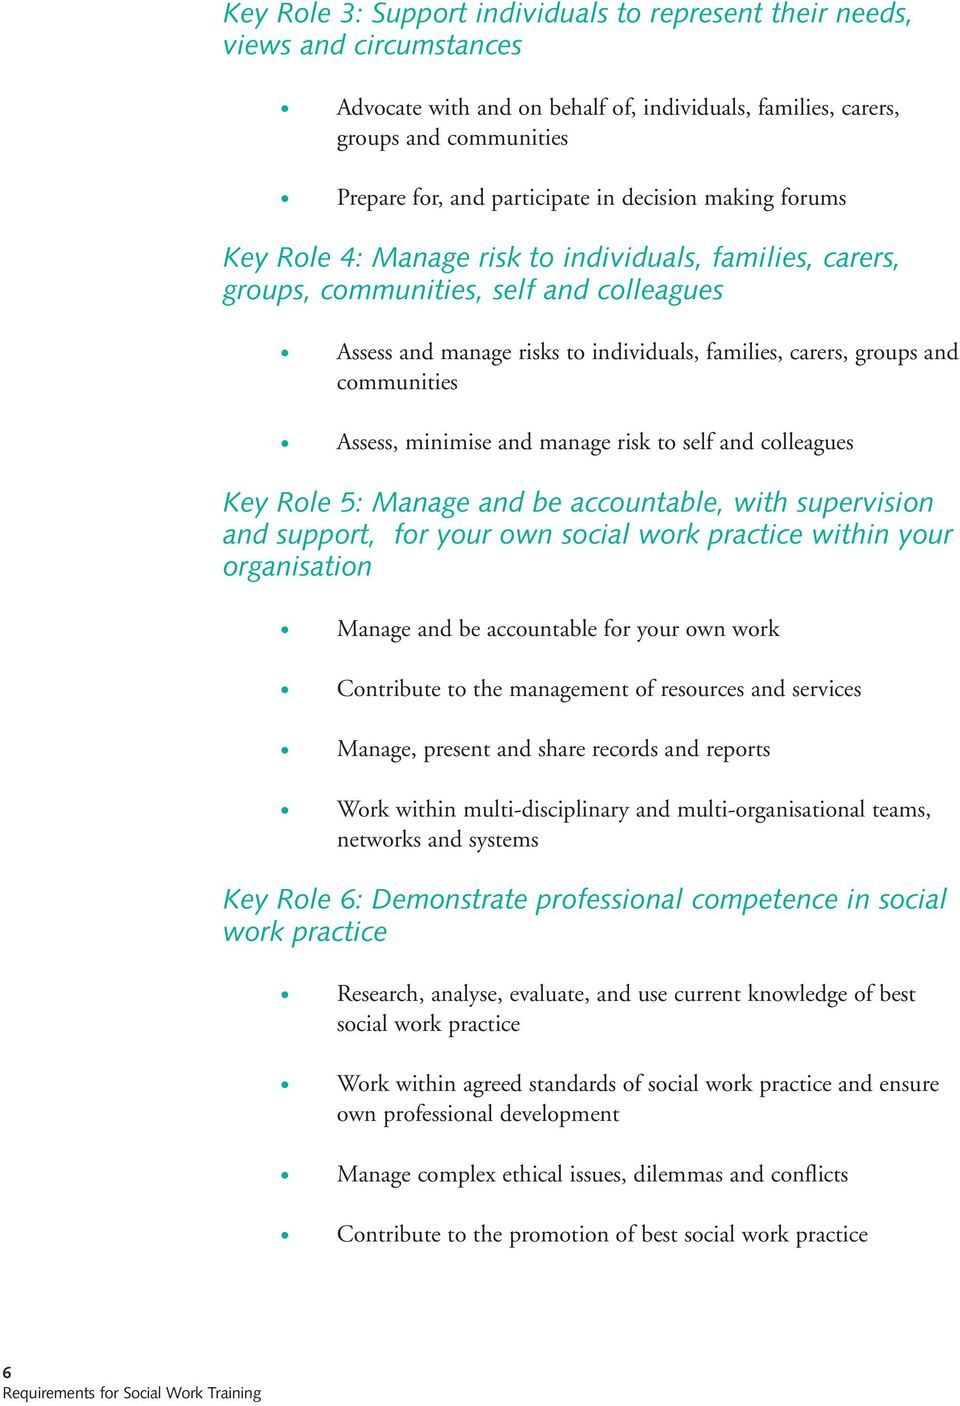 communities Assess, minimise and manage risk to self and colleagues Key Role 5: Manage and be accountable, with supervision and support, for your own social work practice within your organisation